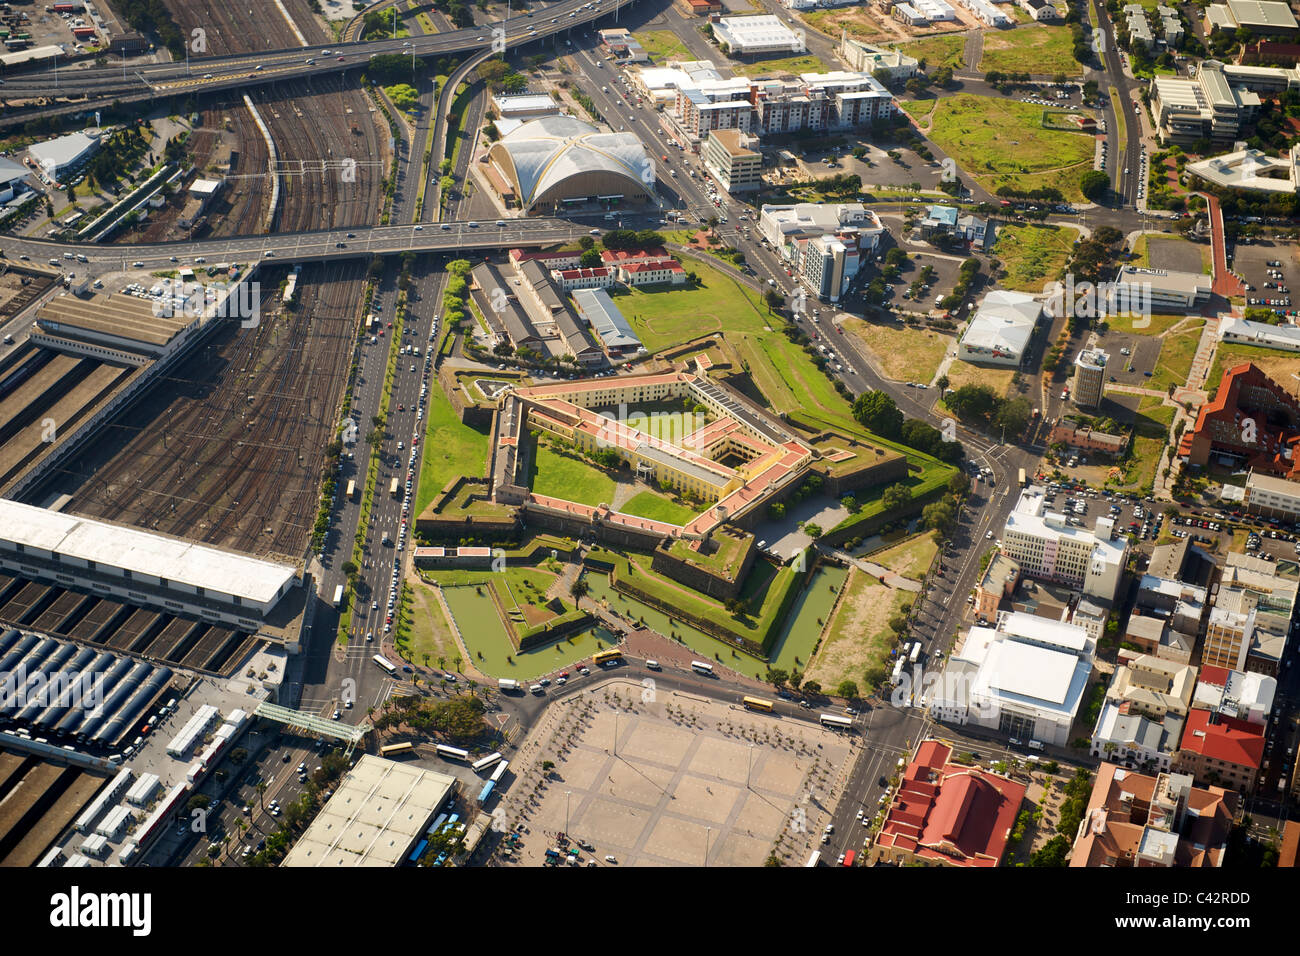 Aerial View Of The Castle The Good Hope Exhibition Centre